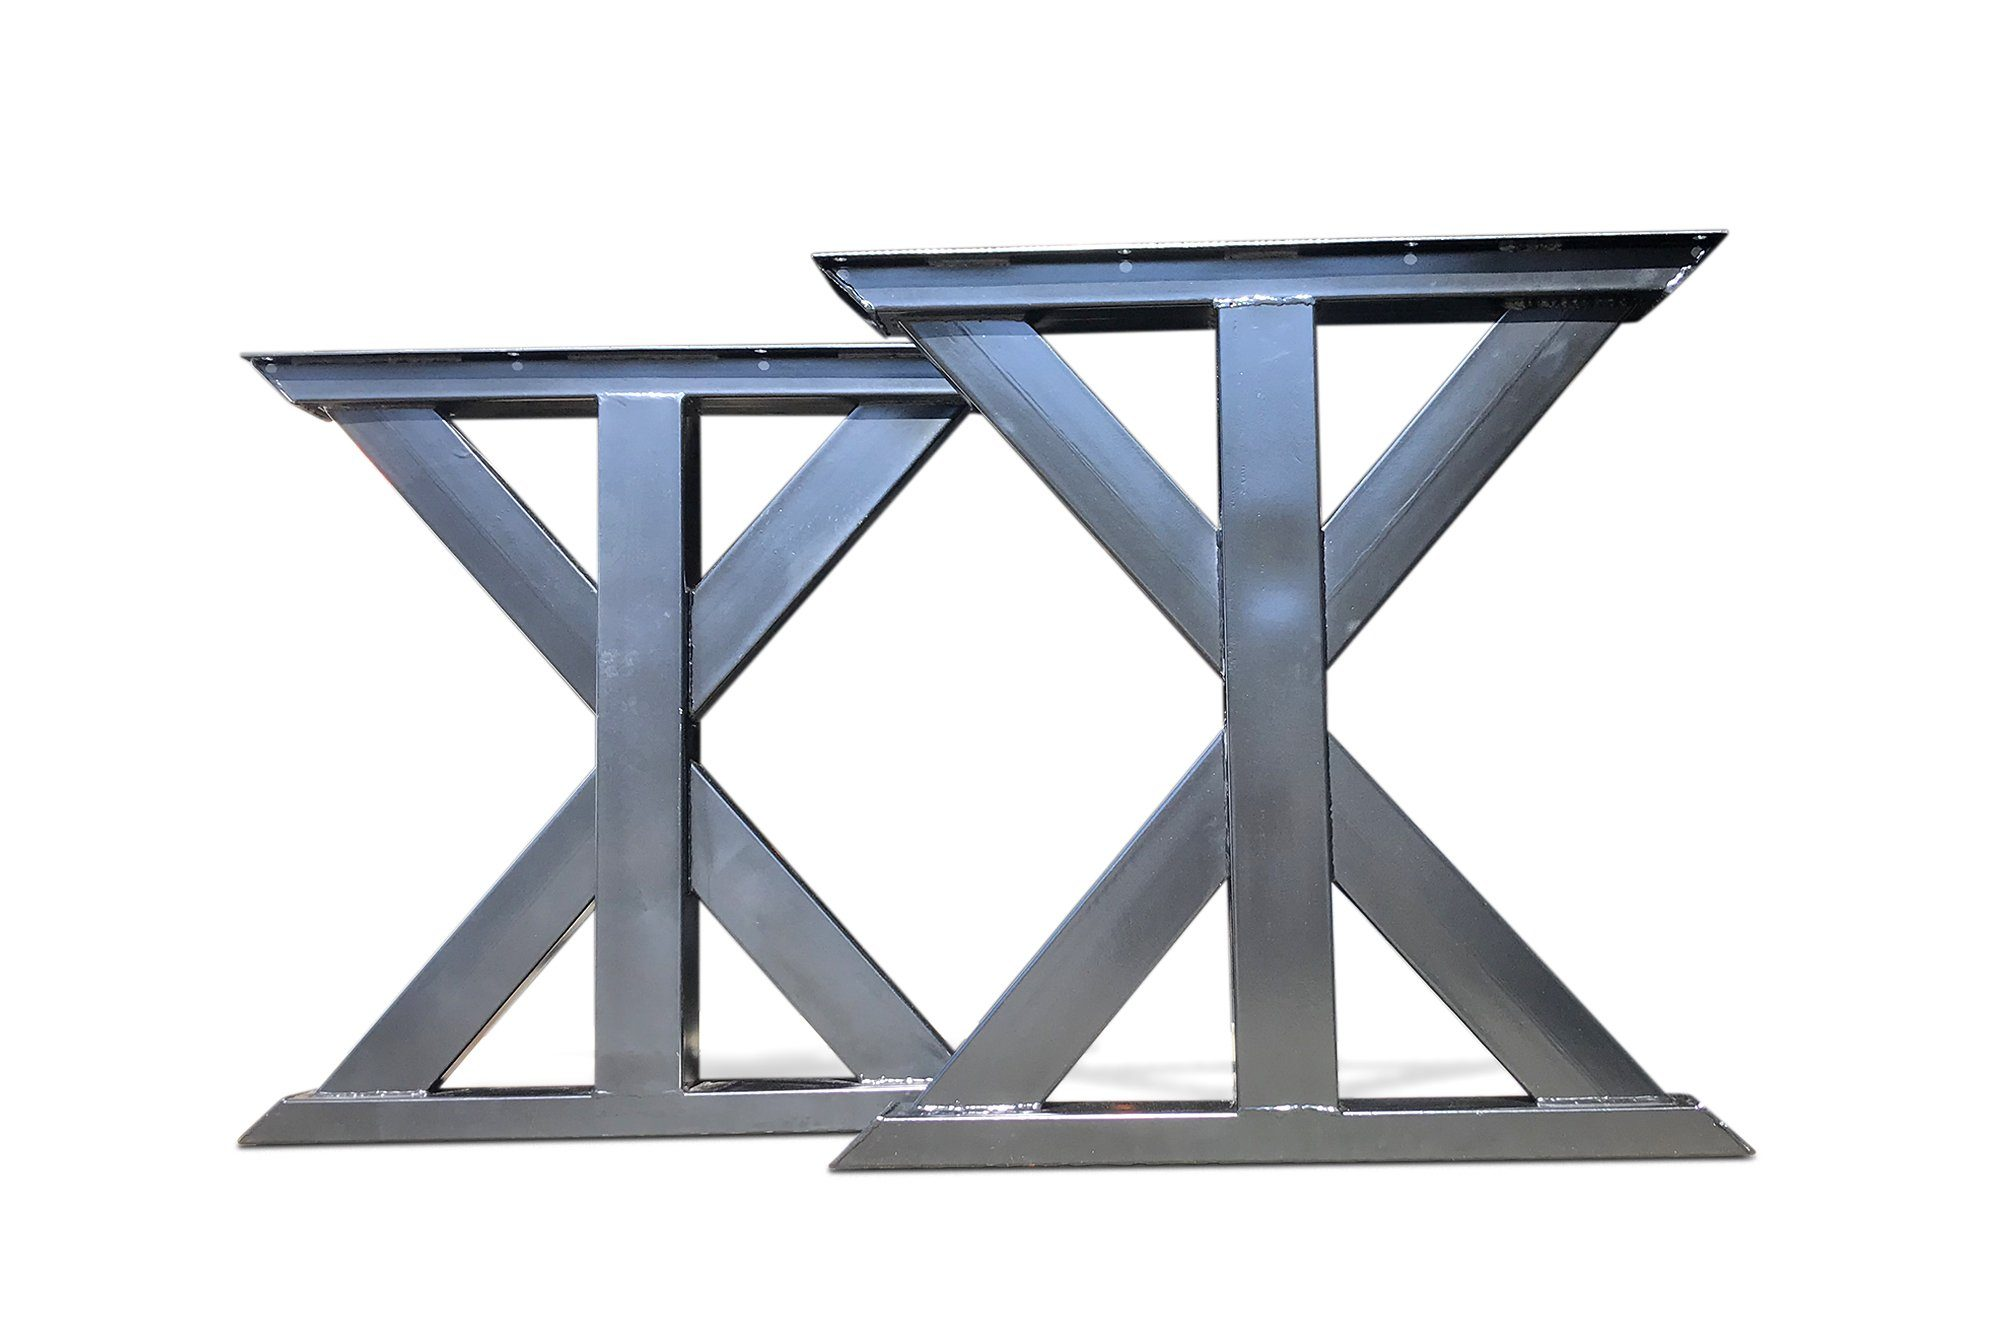 Farmhouse Industrial Trestle Metal Table Legs - Black Finish Steel